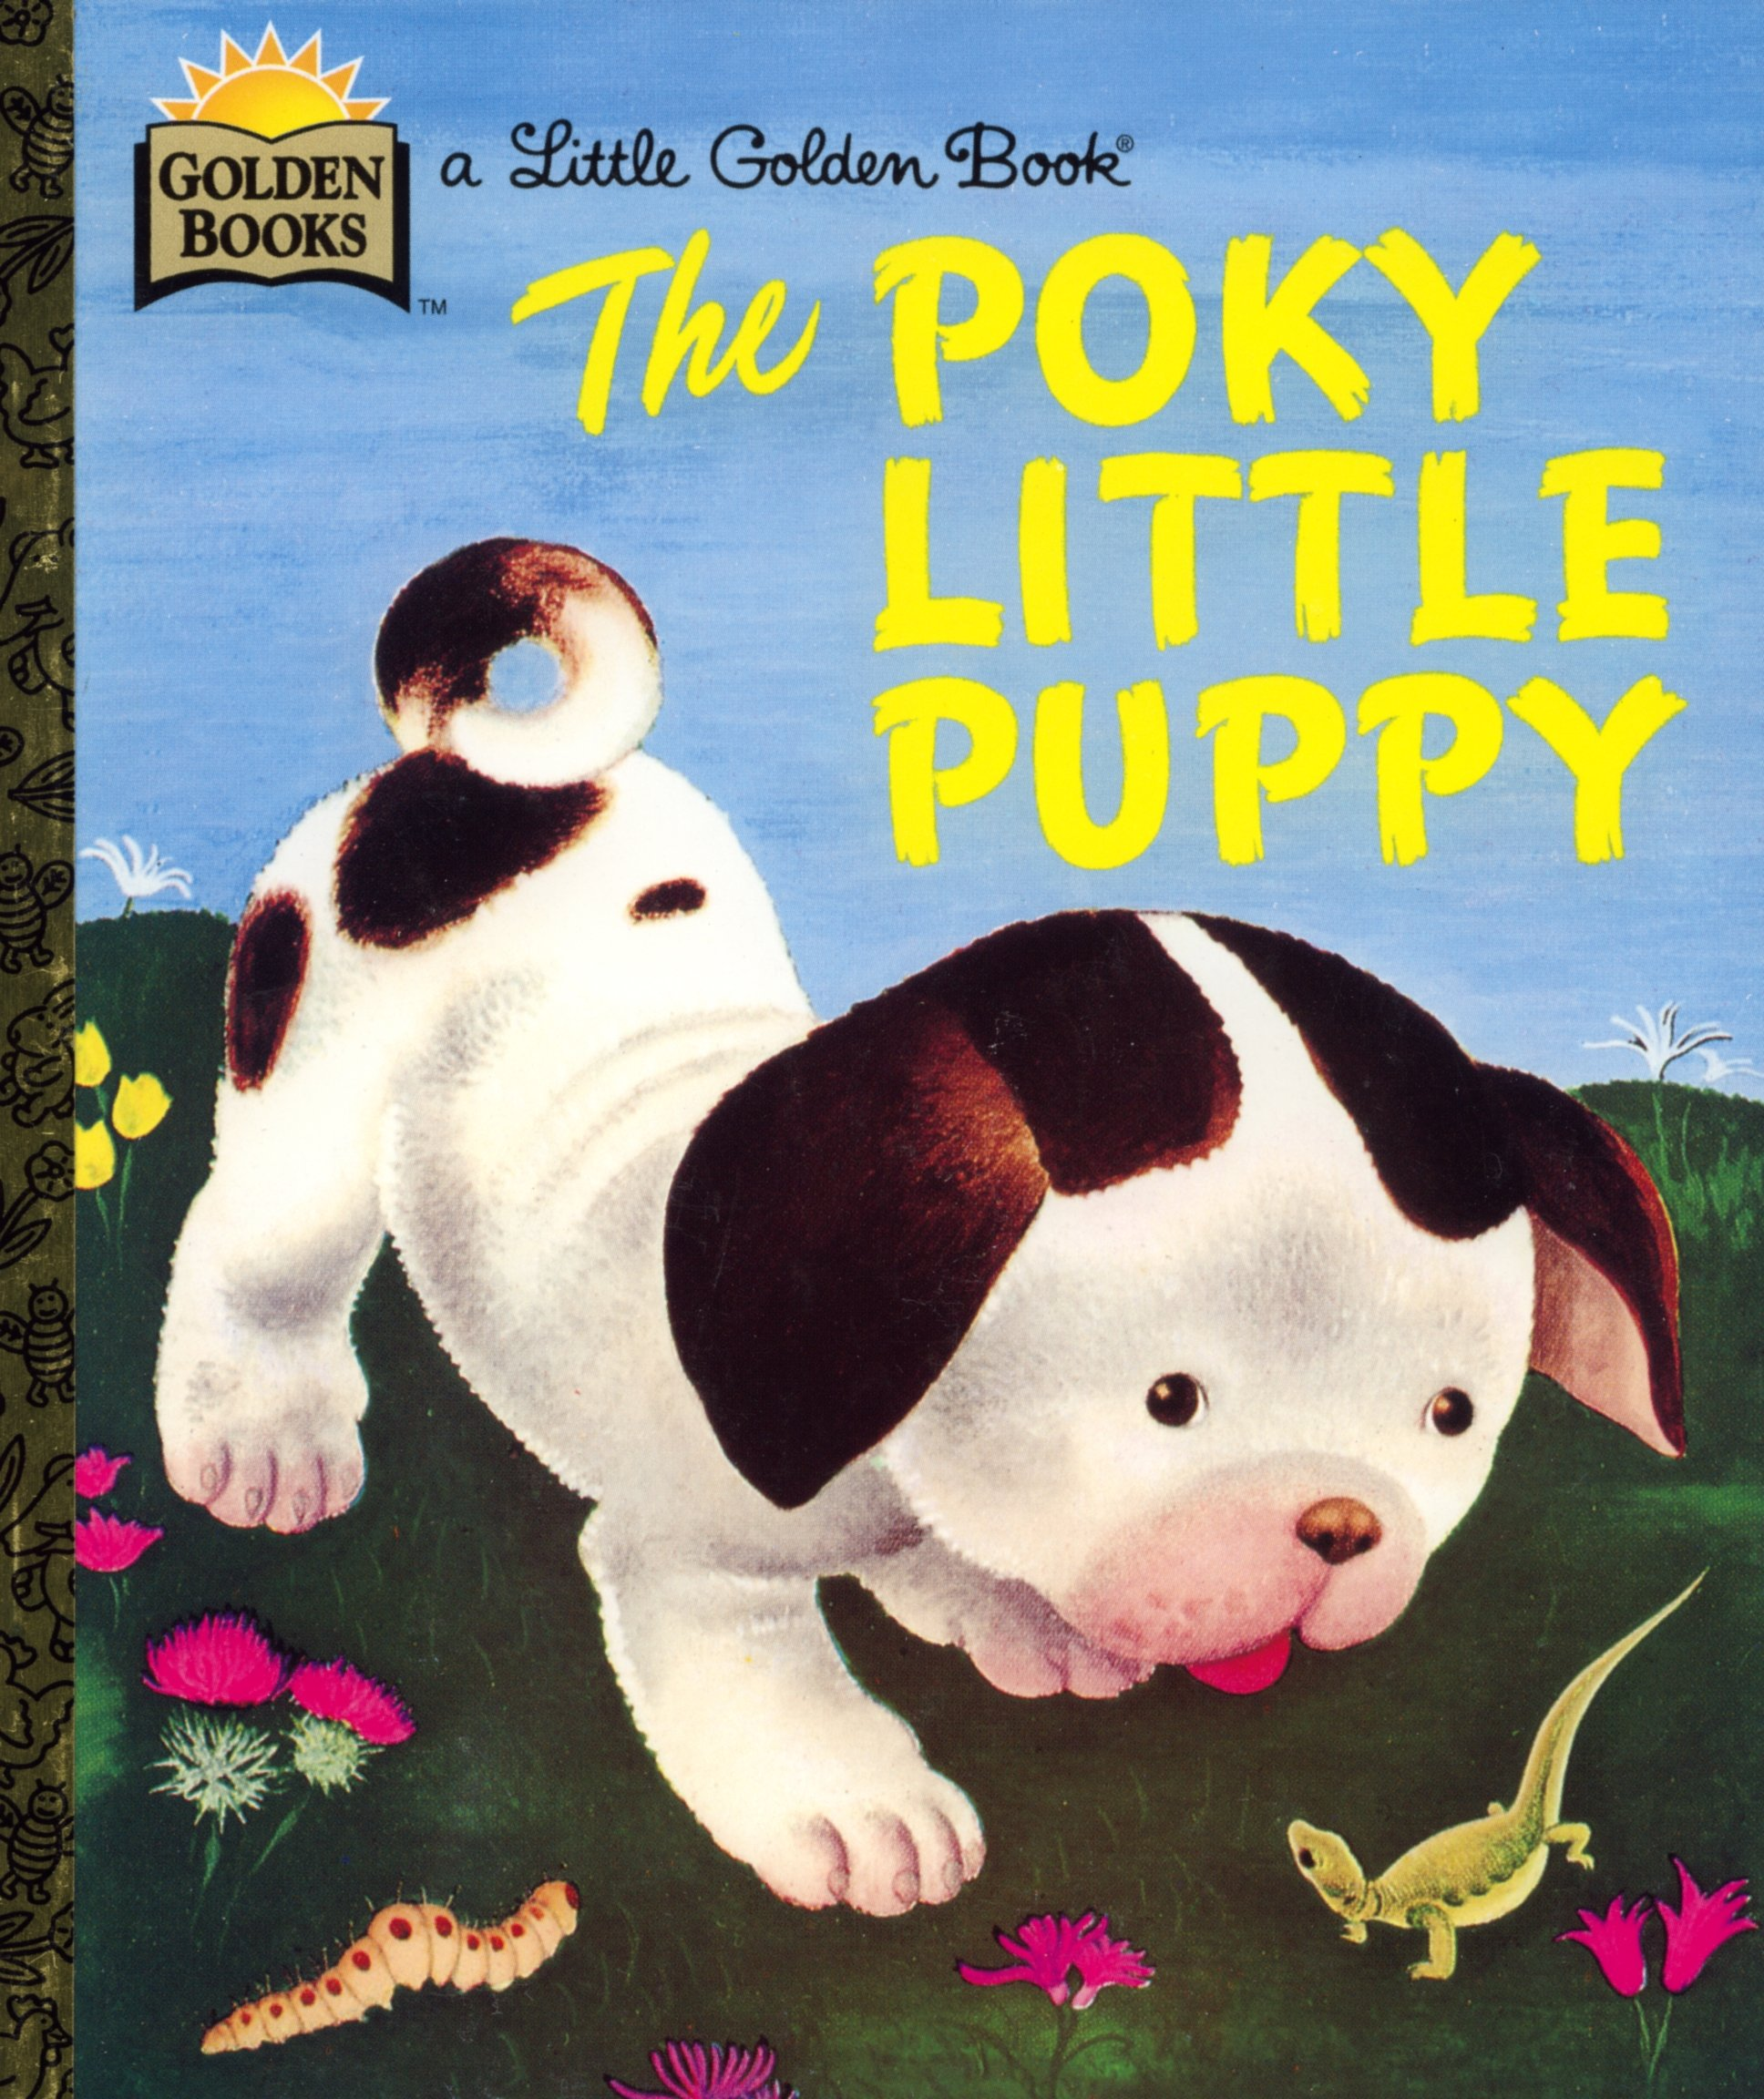 The Poky Little Puppy A Little Golden Book Classic Janette